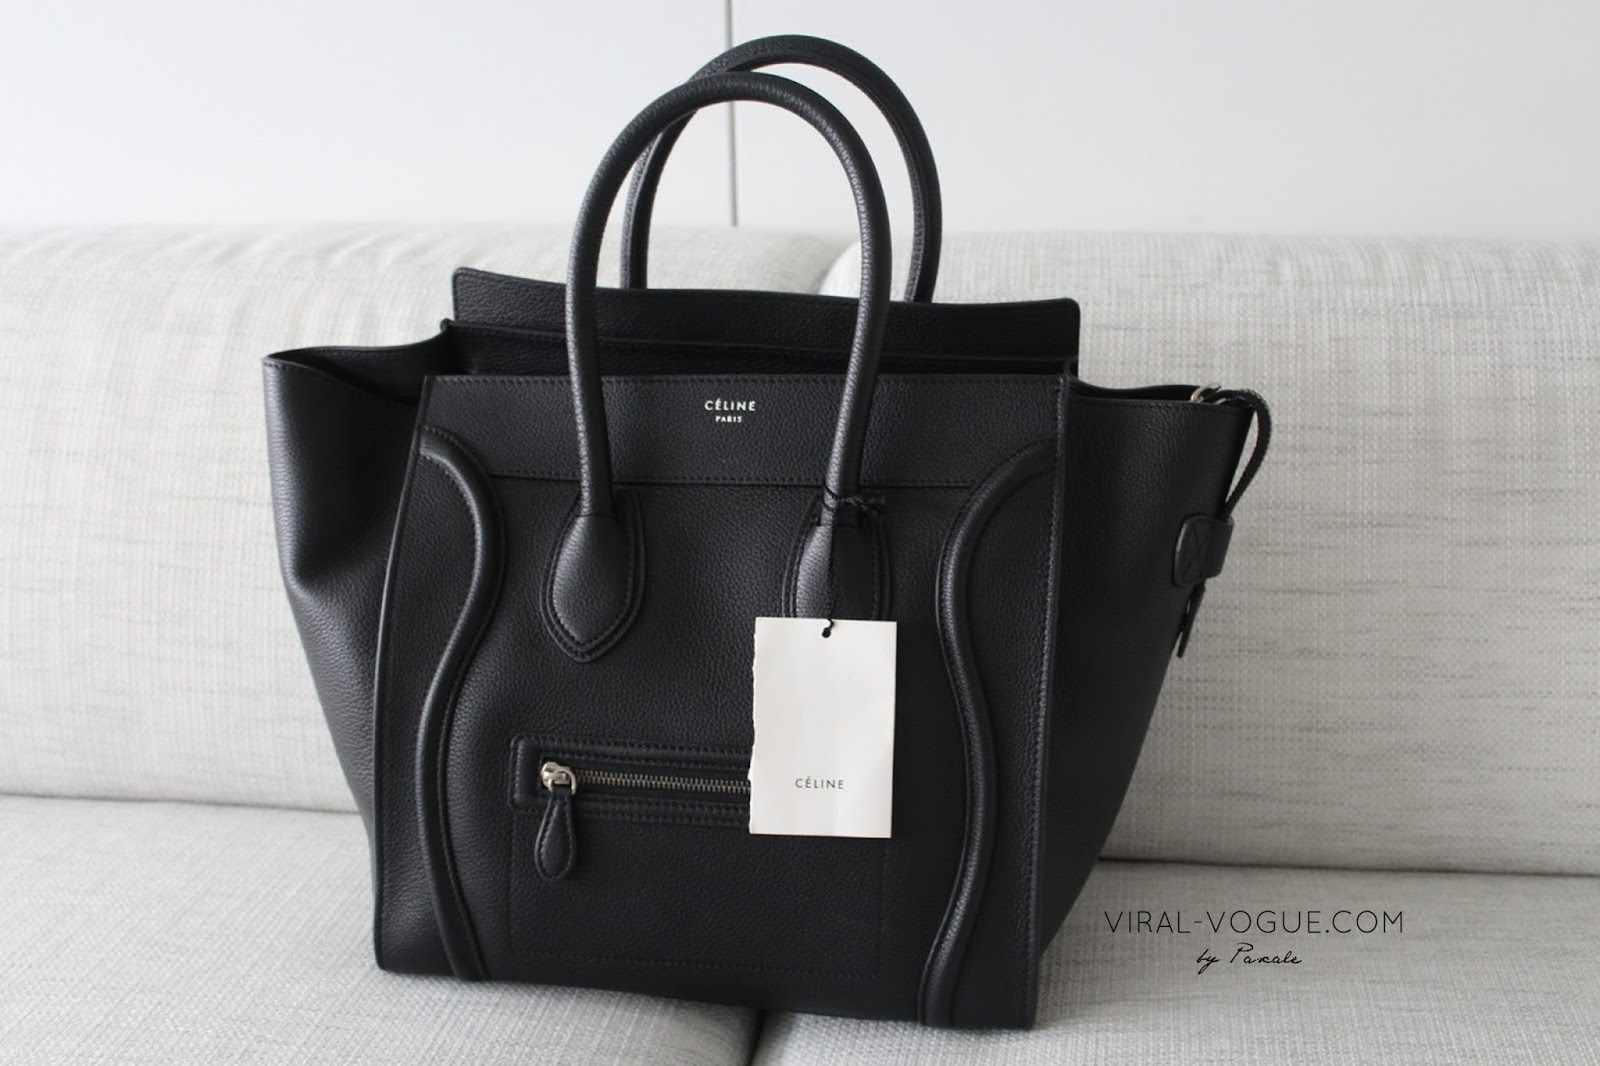 buy celine purse online - VIRAL-VOGUE: C��line Luggage comparison & review (C��line Mini X ...